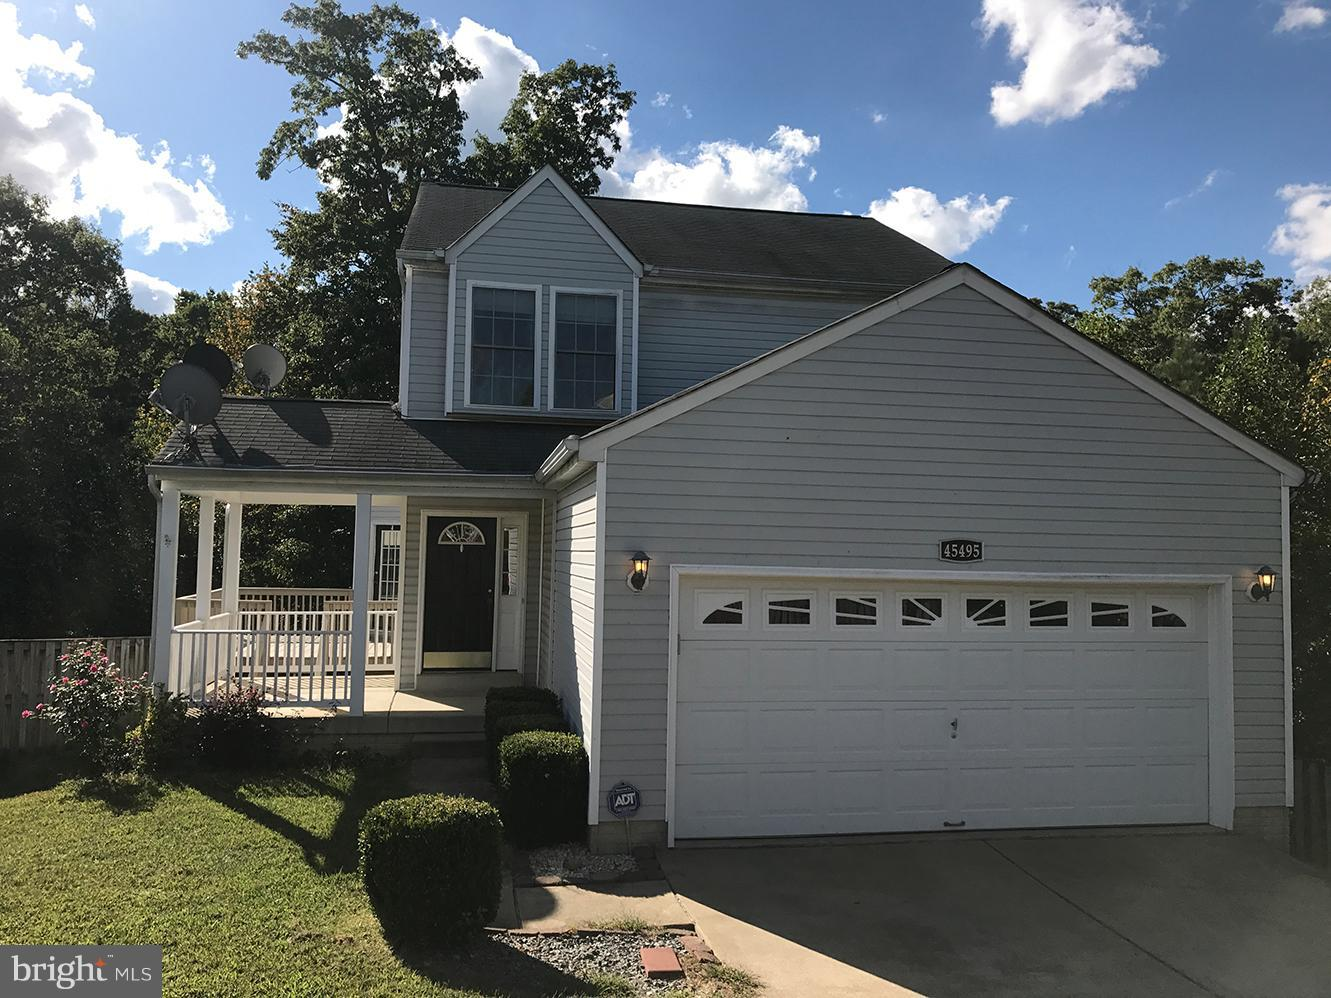 45495 WEXFORD WAY, GREAT MILLS, MD 20634